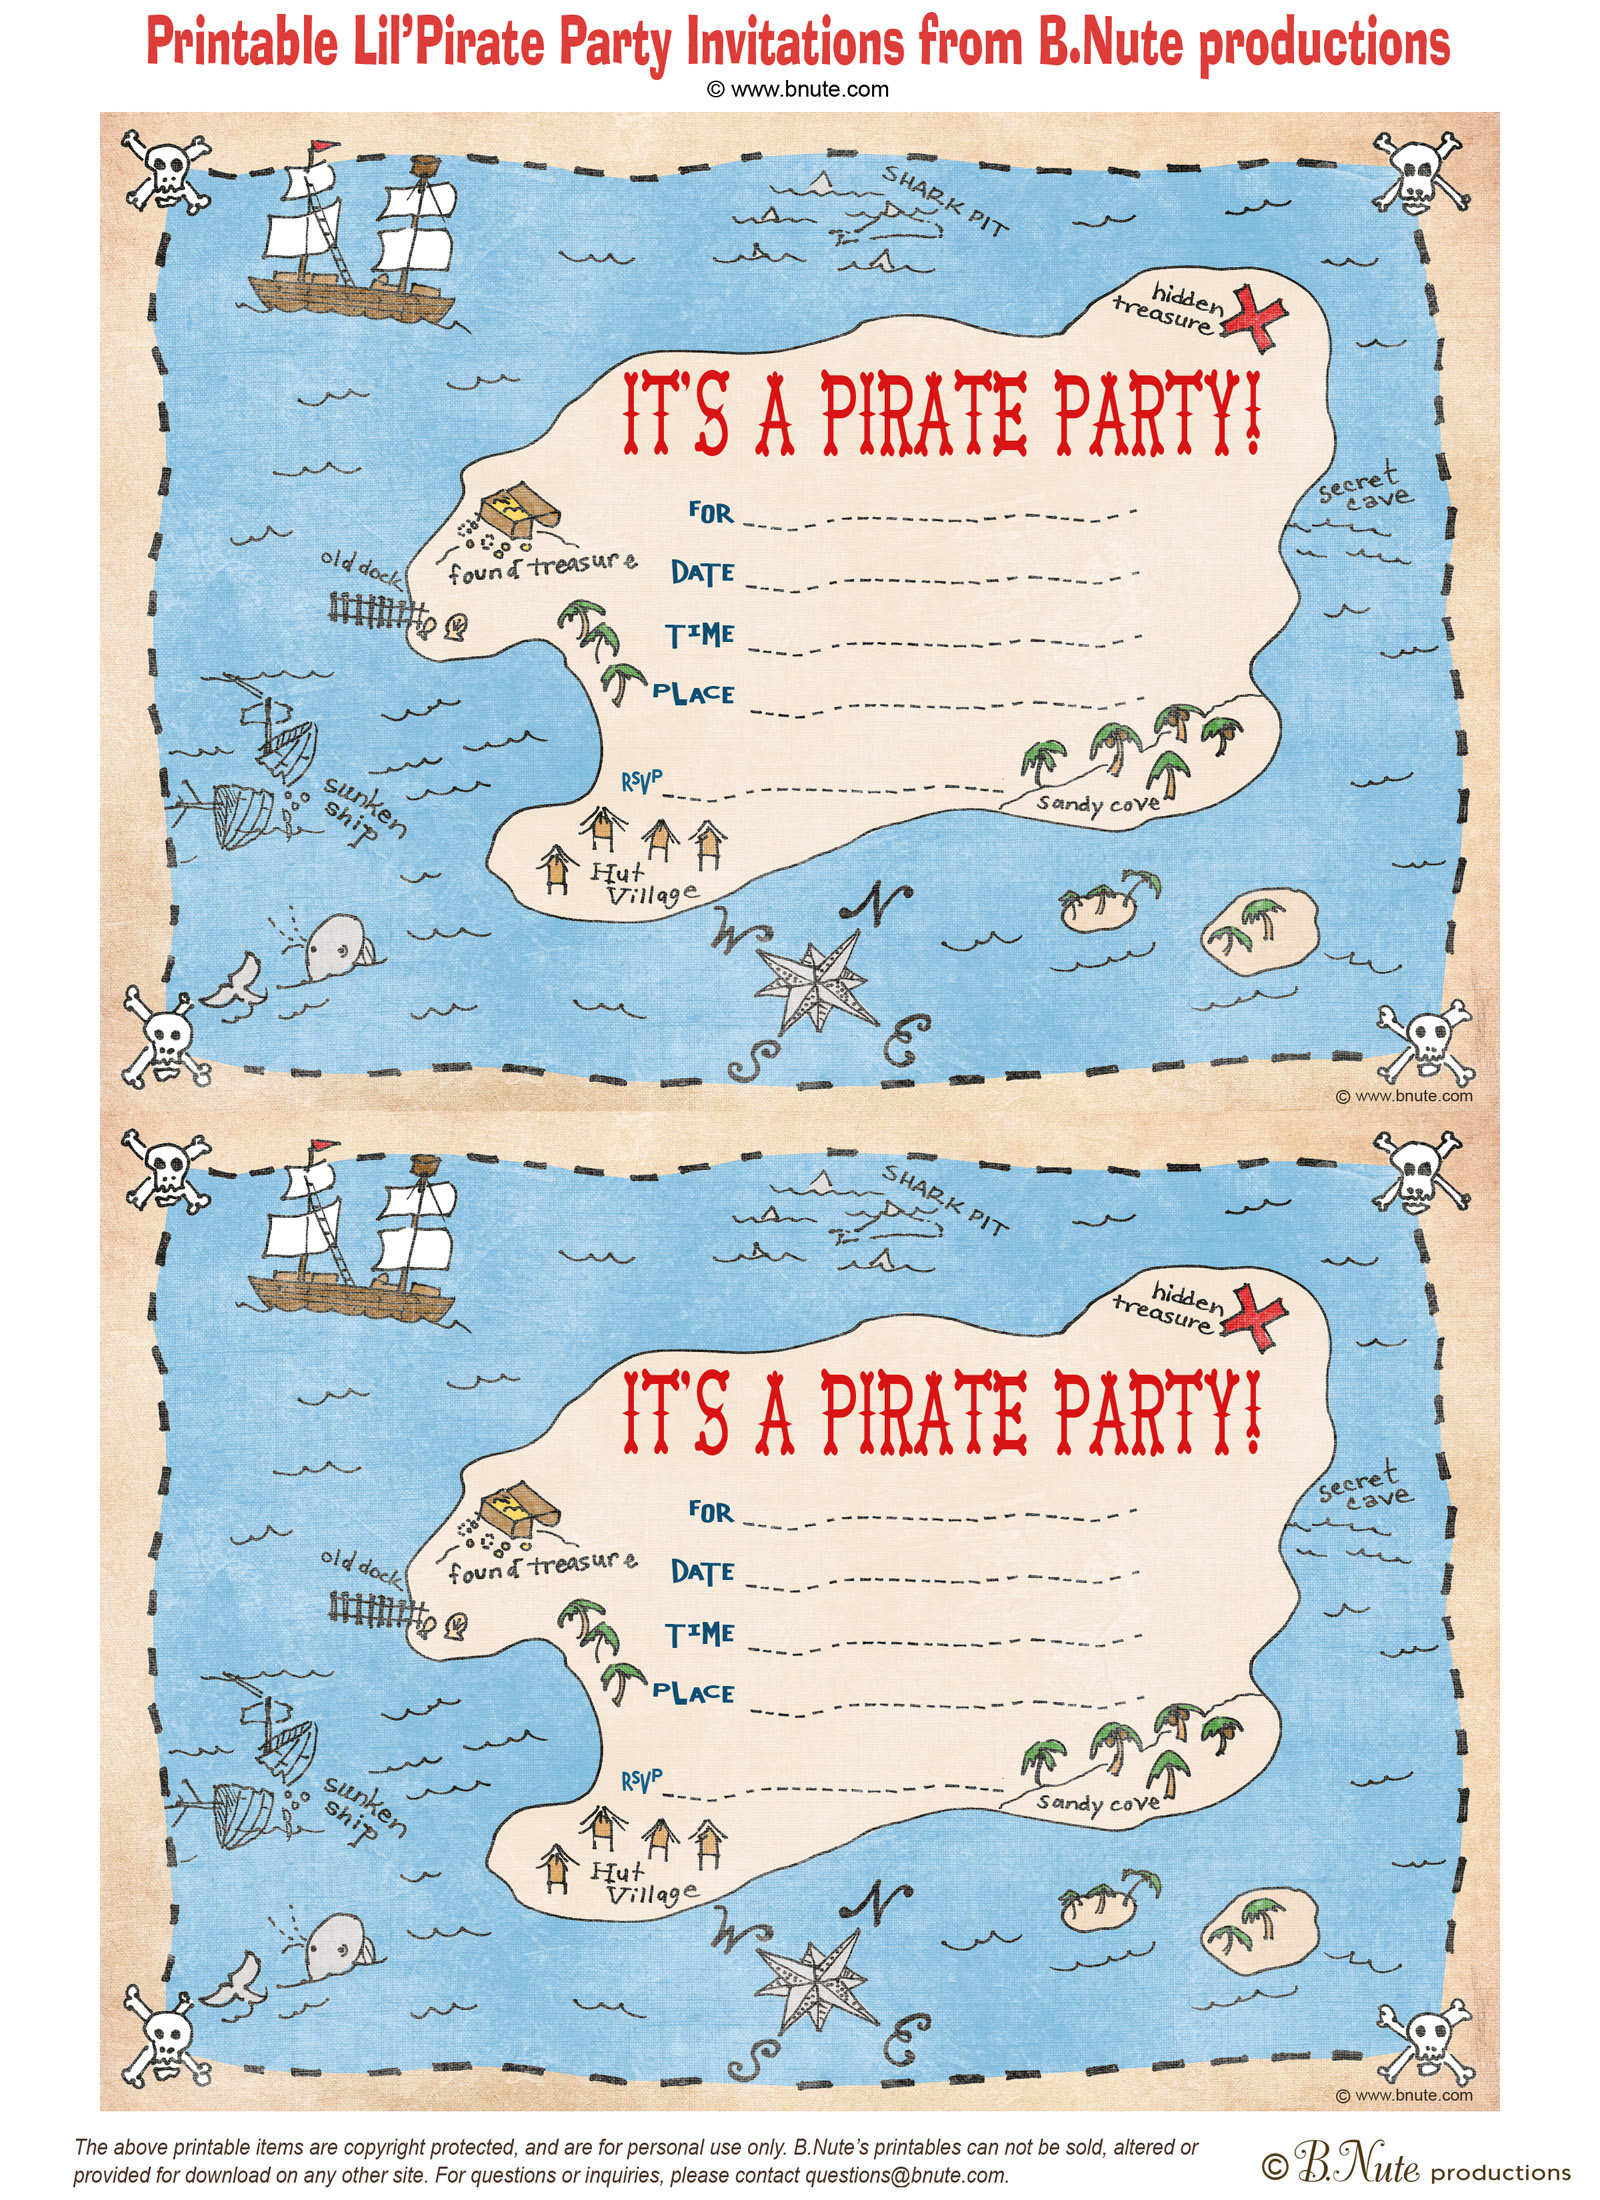 bnute productions Free Printable Pirate Party Invitations – Pirate Party Invites